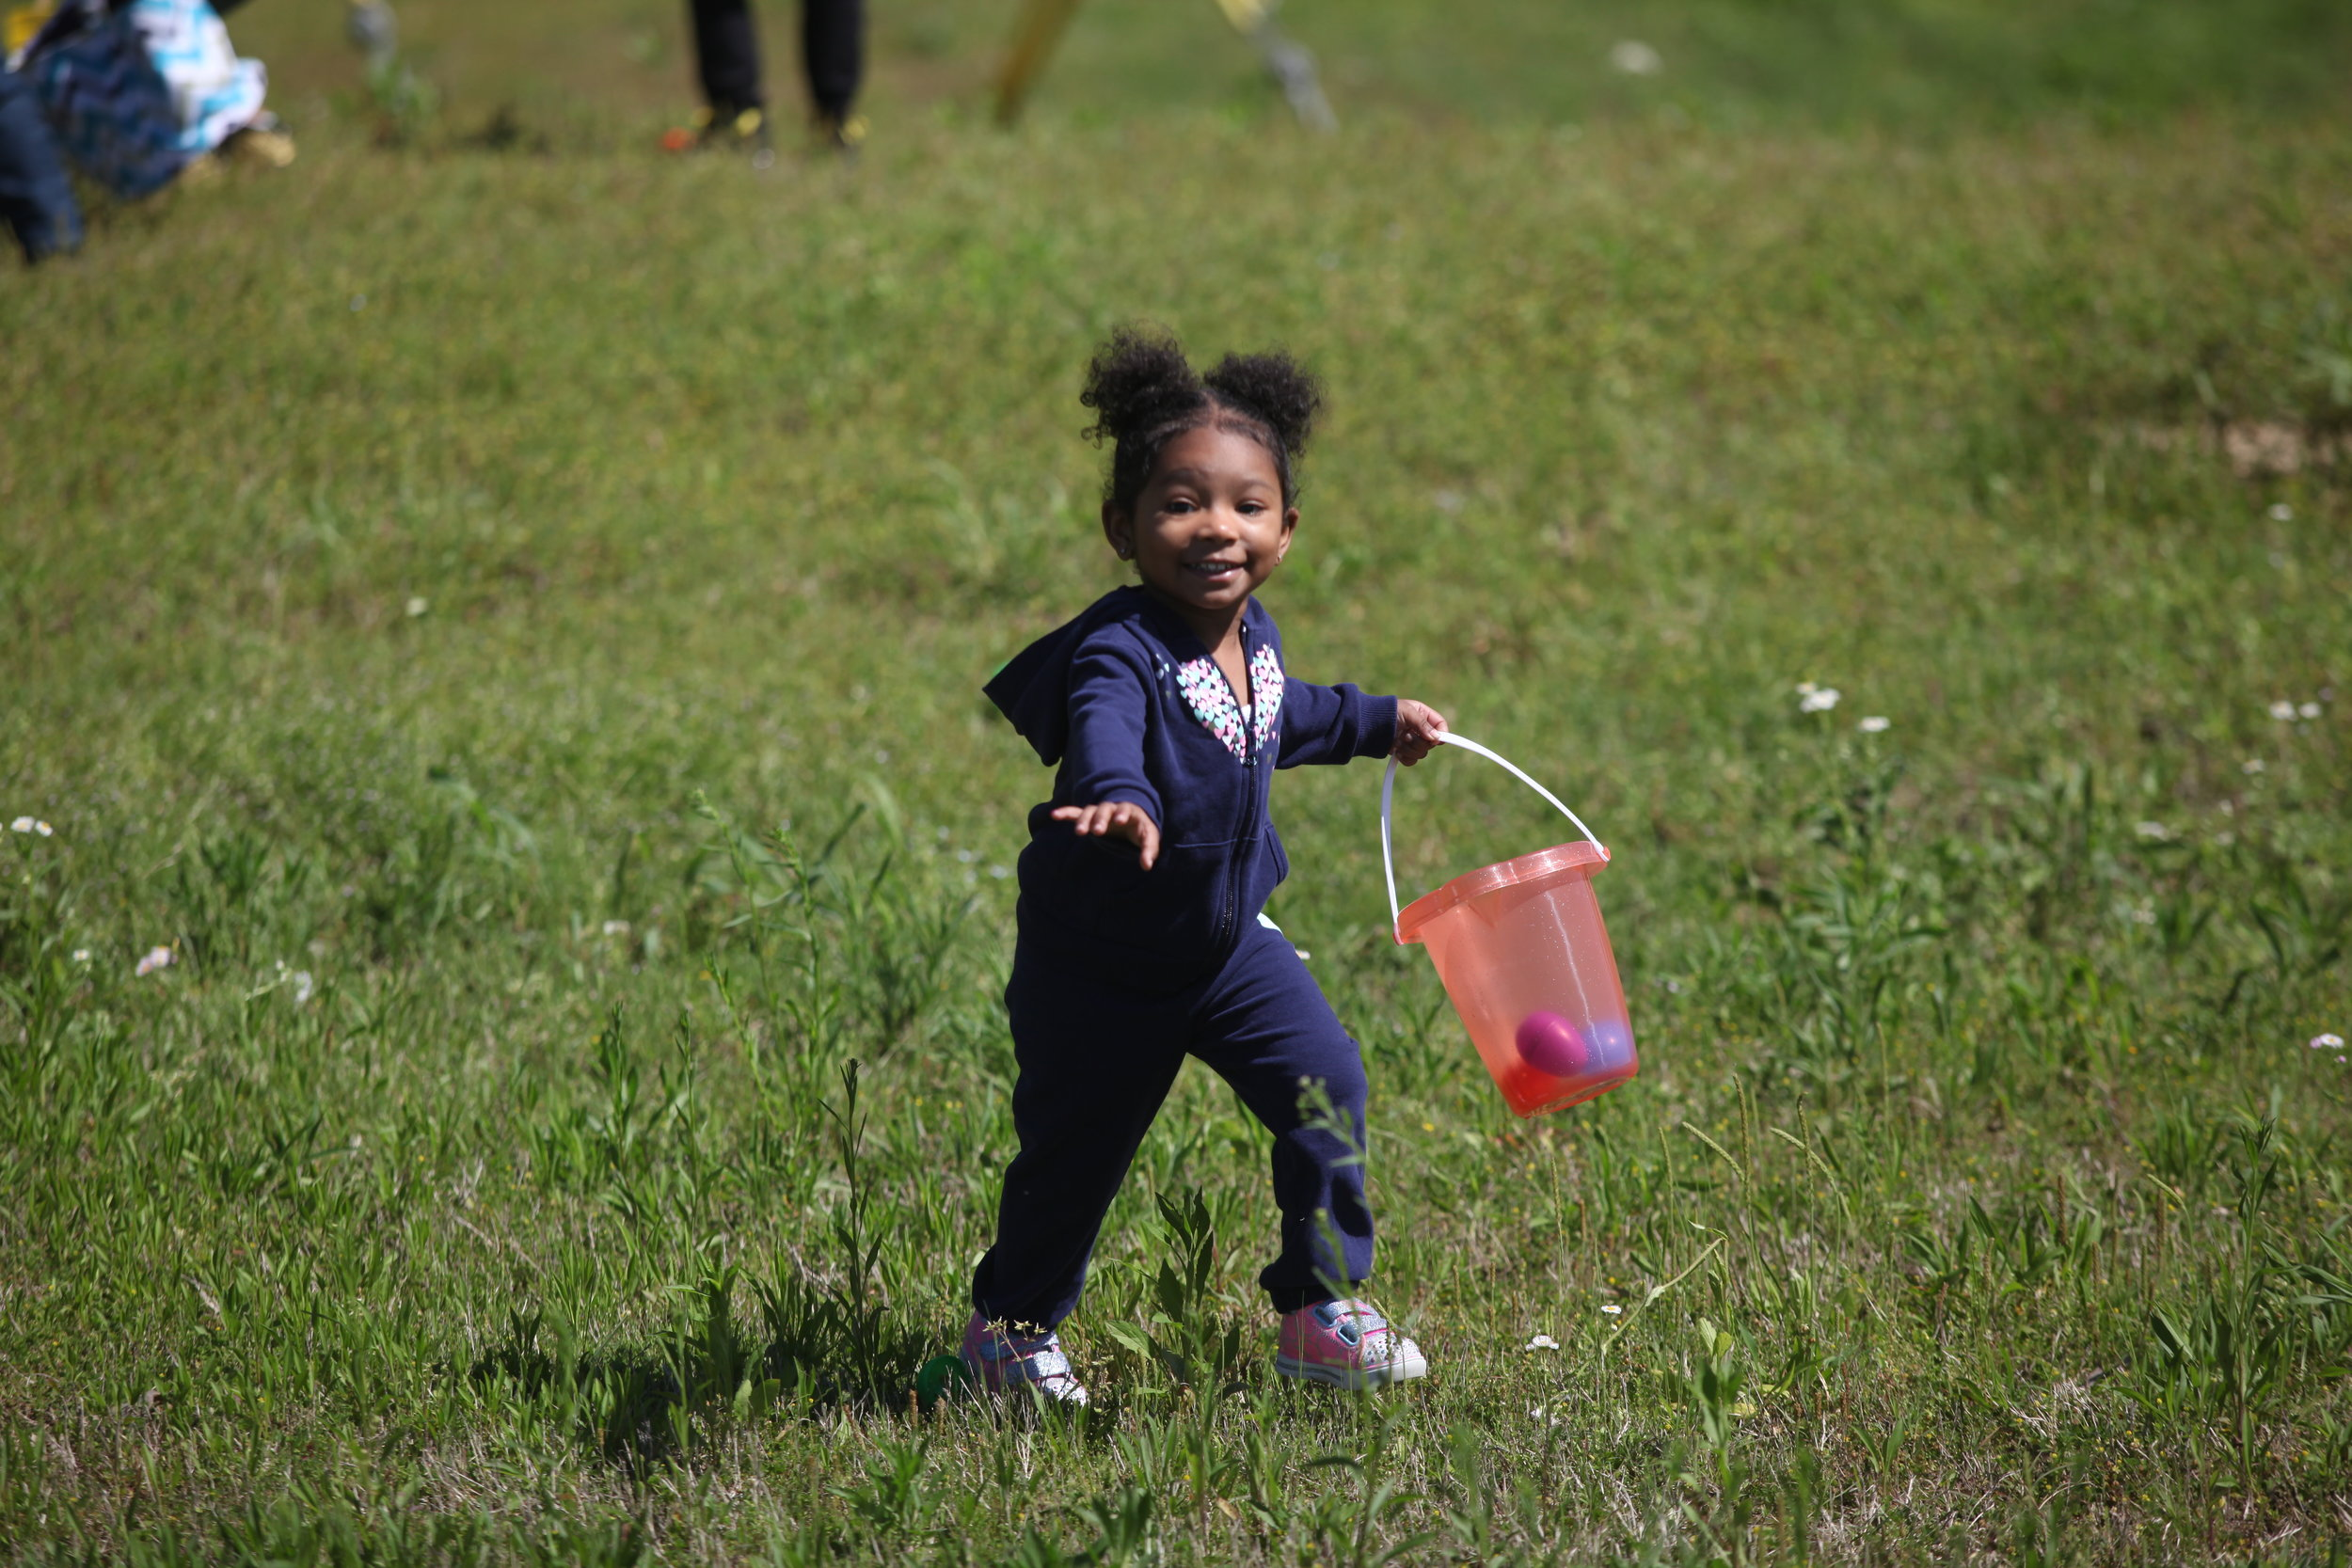 Jaliyah Miles, 2, runs while looking for Easter eggs during the Financial Literacy Easter Egg Hunt by the Academy at King Solomon Baptist Church Saturday. Kids found eggs which they turned in to receive money by color code. The Academy had $5000 for kids to receive for the eggs found. (Courtland Wells/The Vicksburg Post)